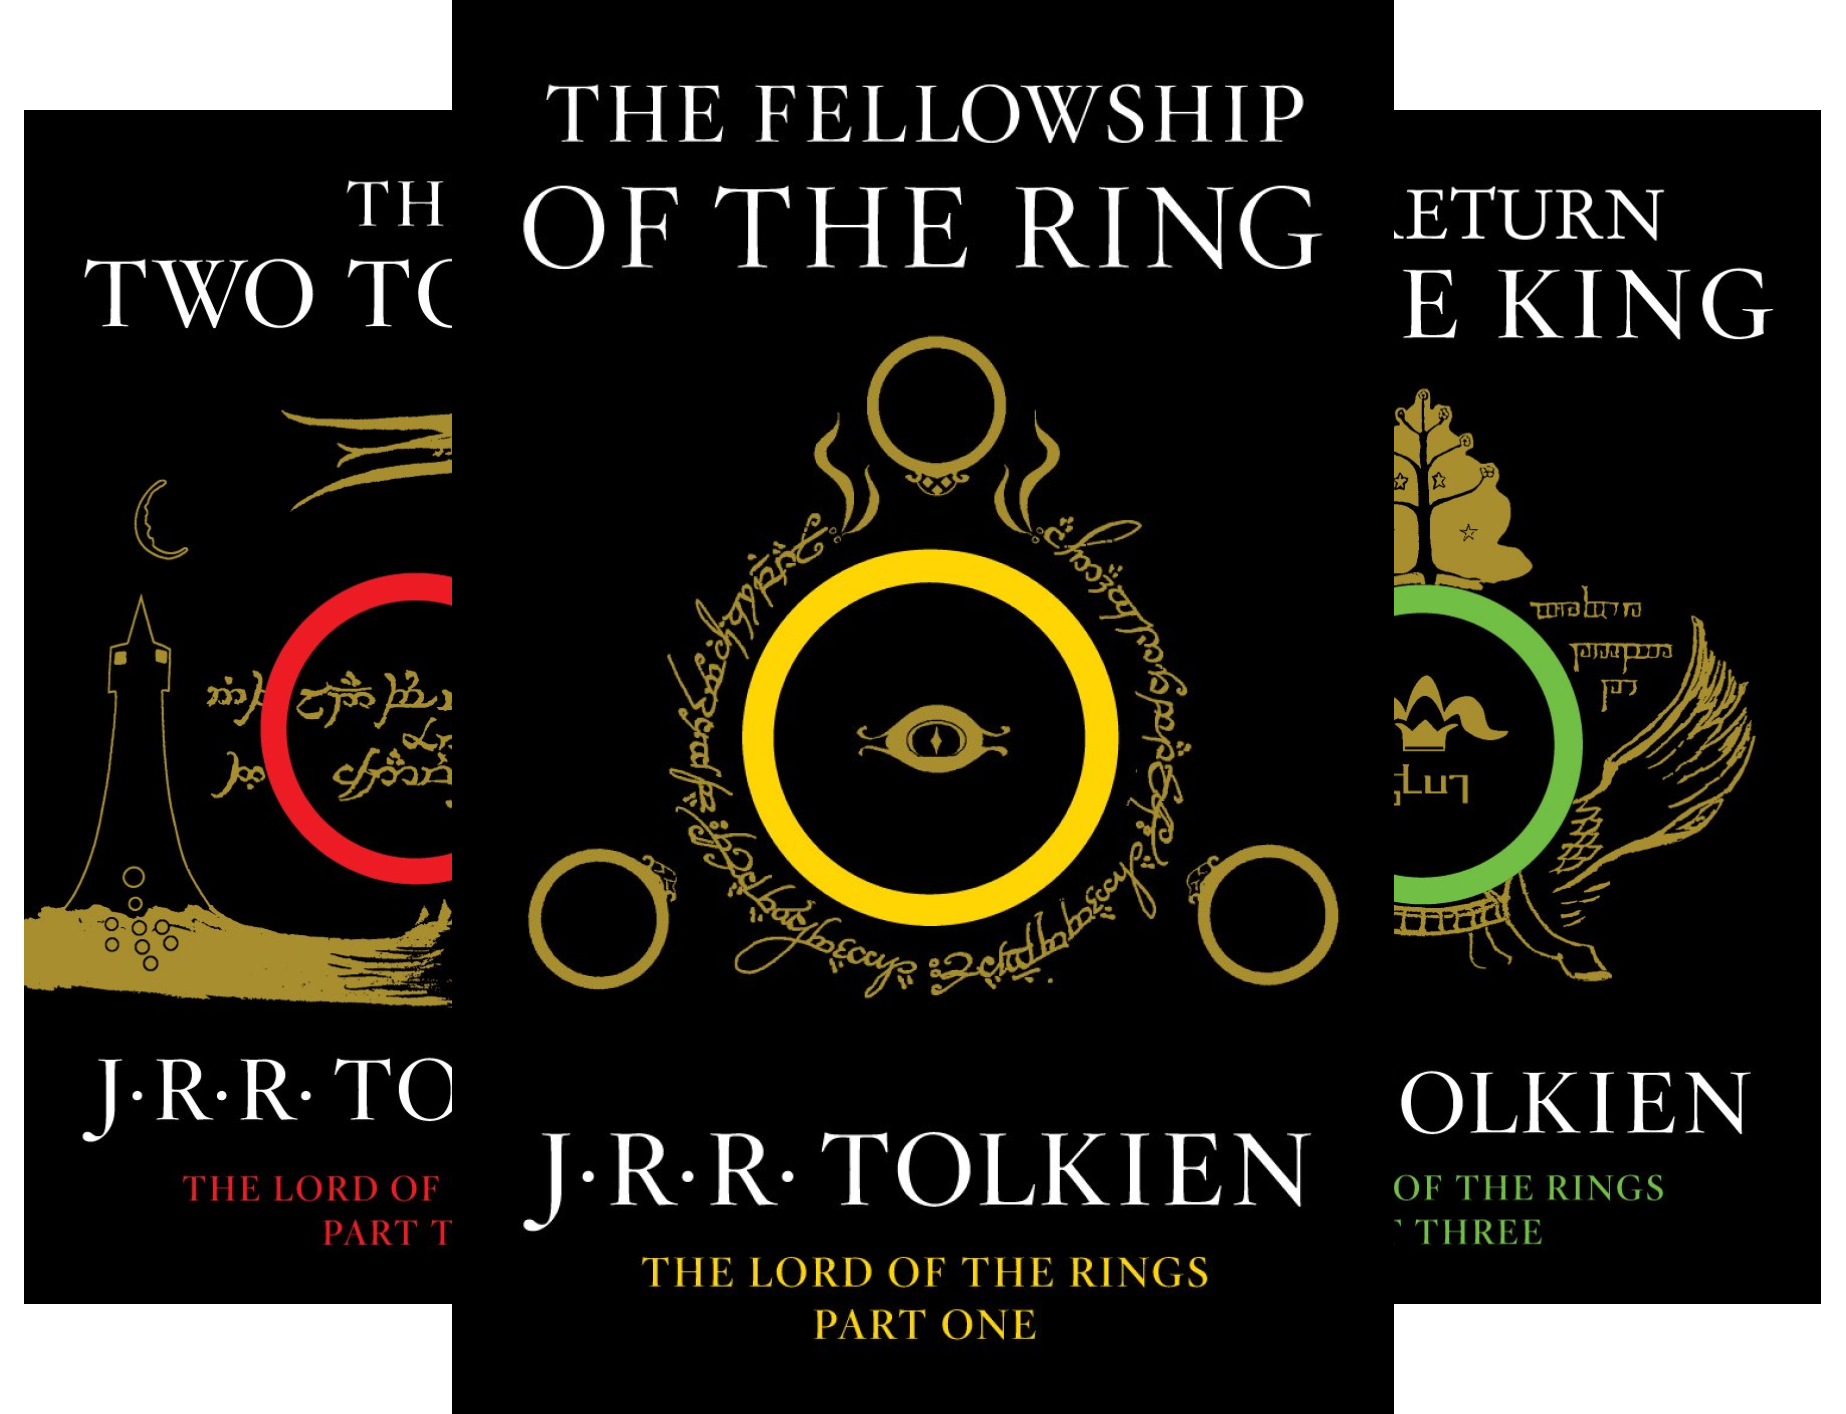 ebooks lord of the rings - 4